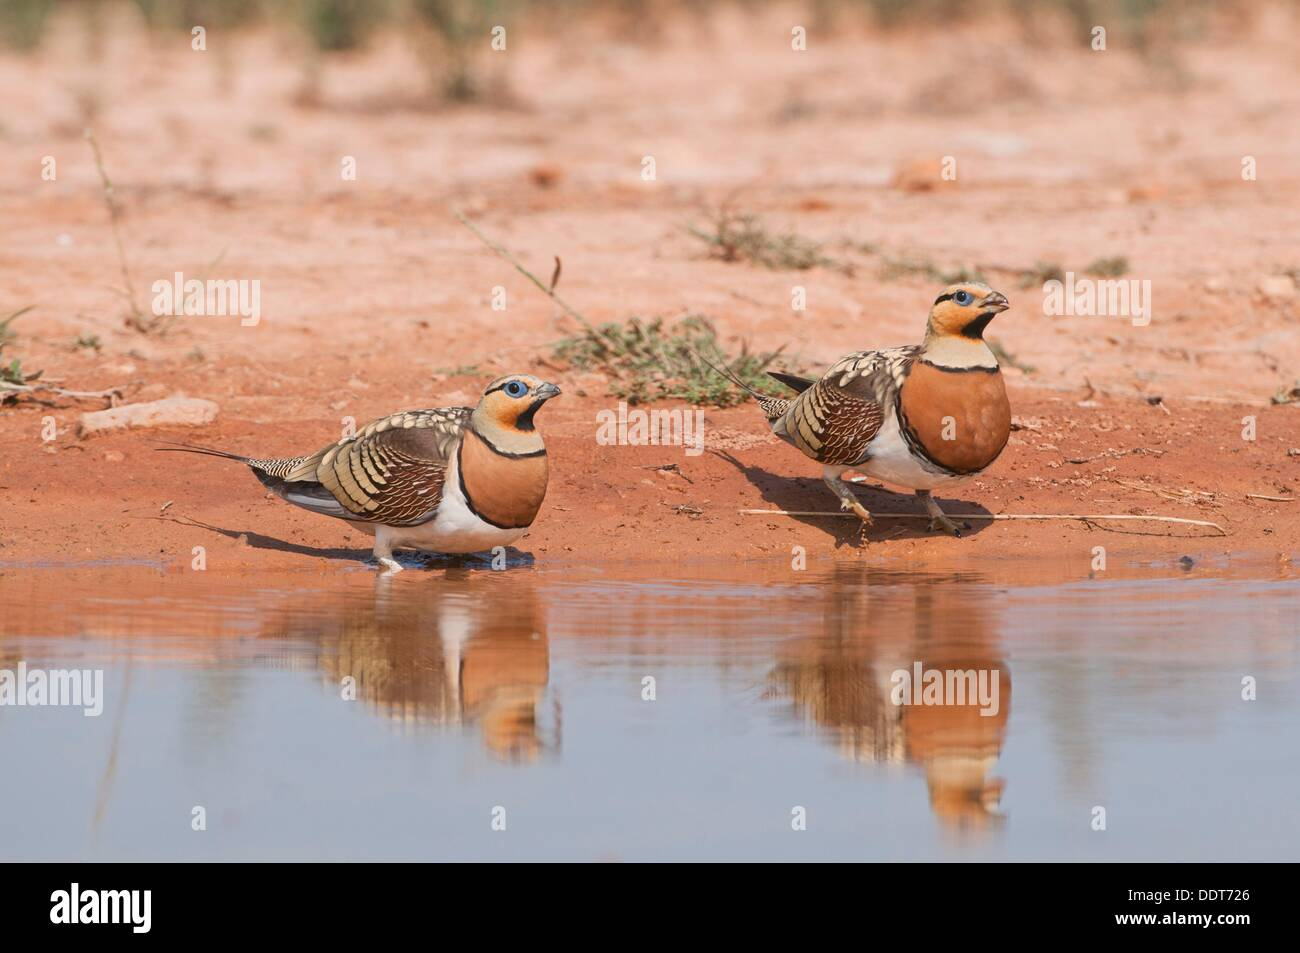 Sandgrouses pterocles alchata coming to drink from a waterhole in the Central Spanish steppes during the summer Stock Photo